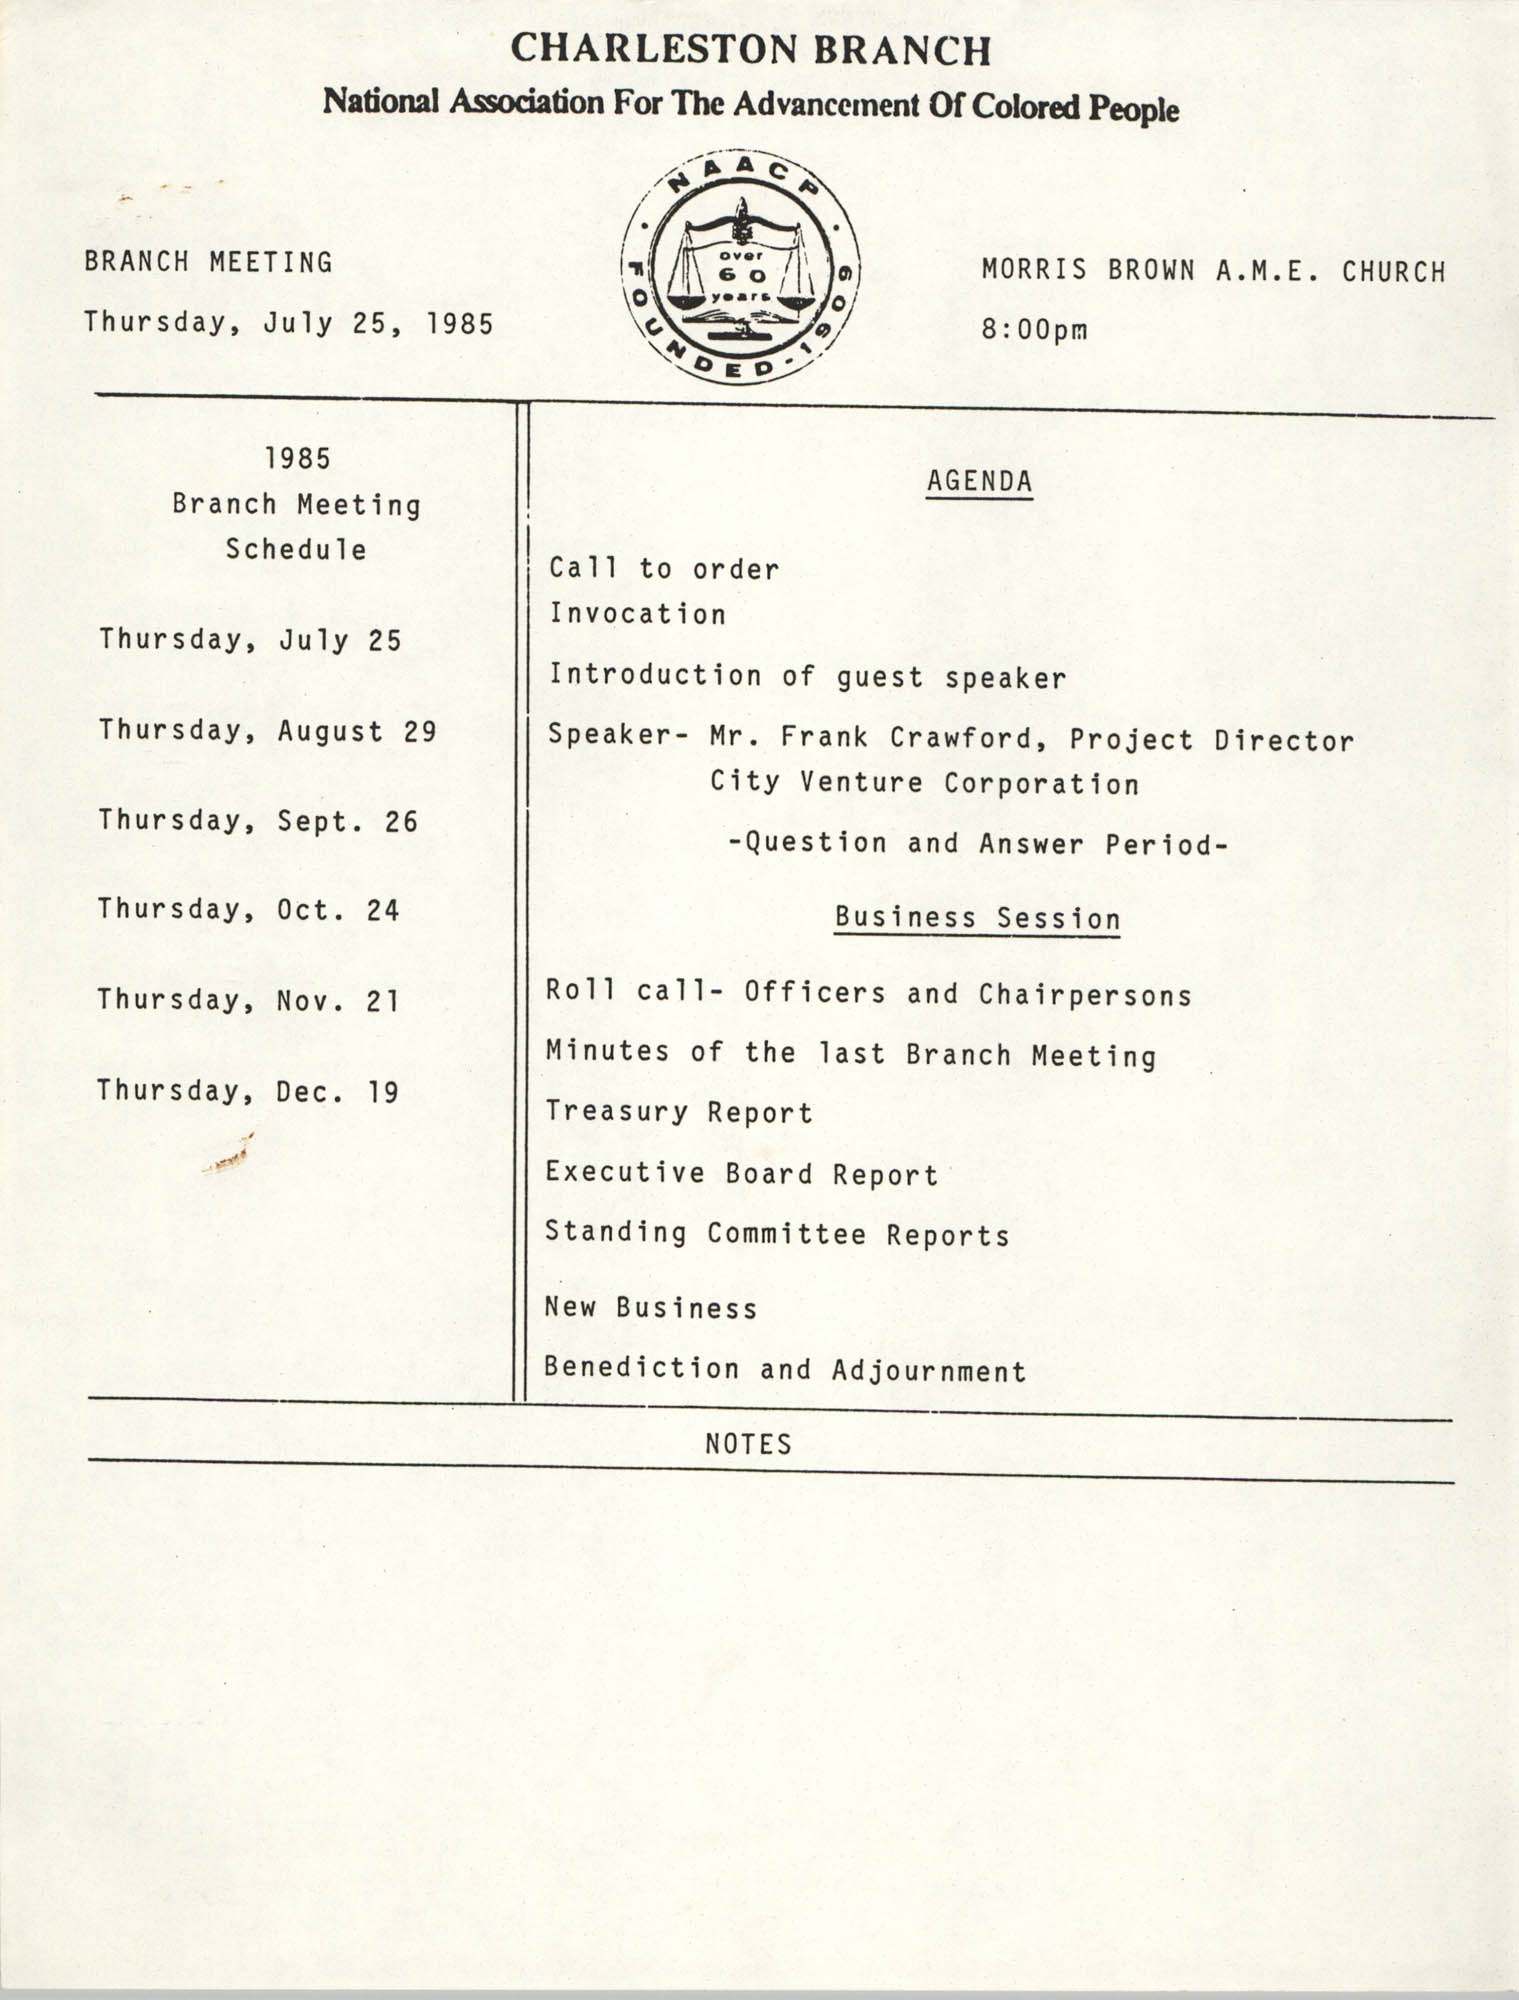 Charleston Branch of the NAACP Branch Meeting Schedule and Agenda, 1985